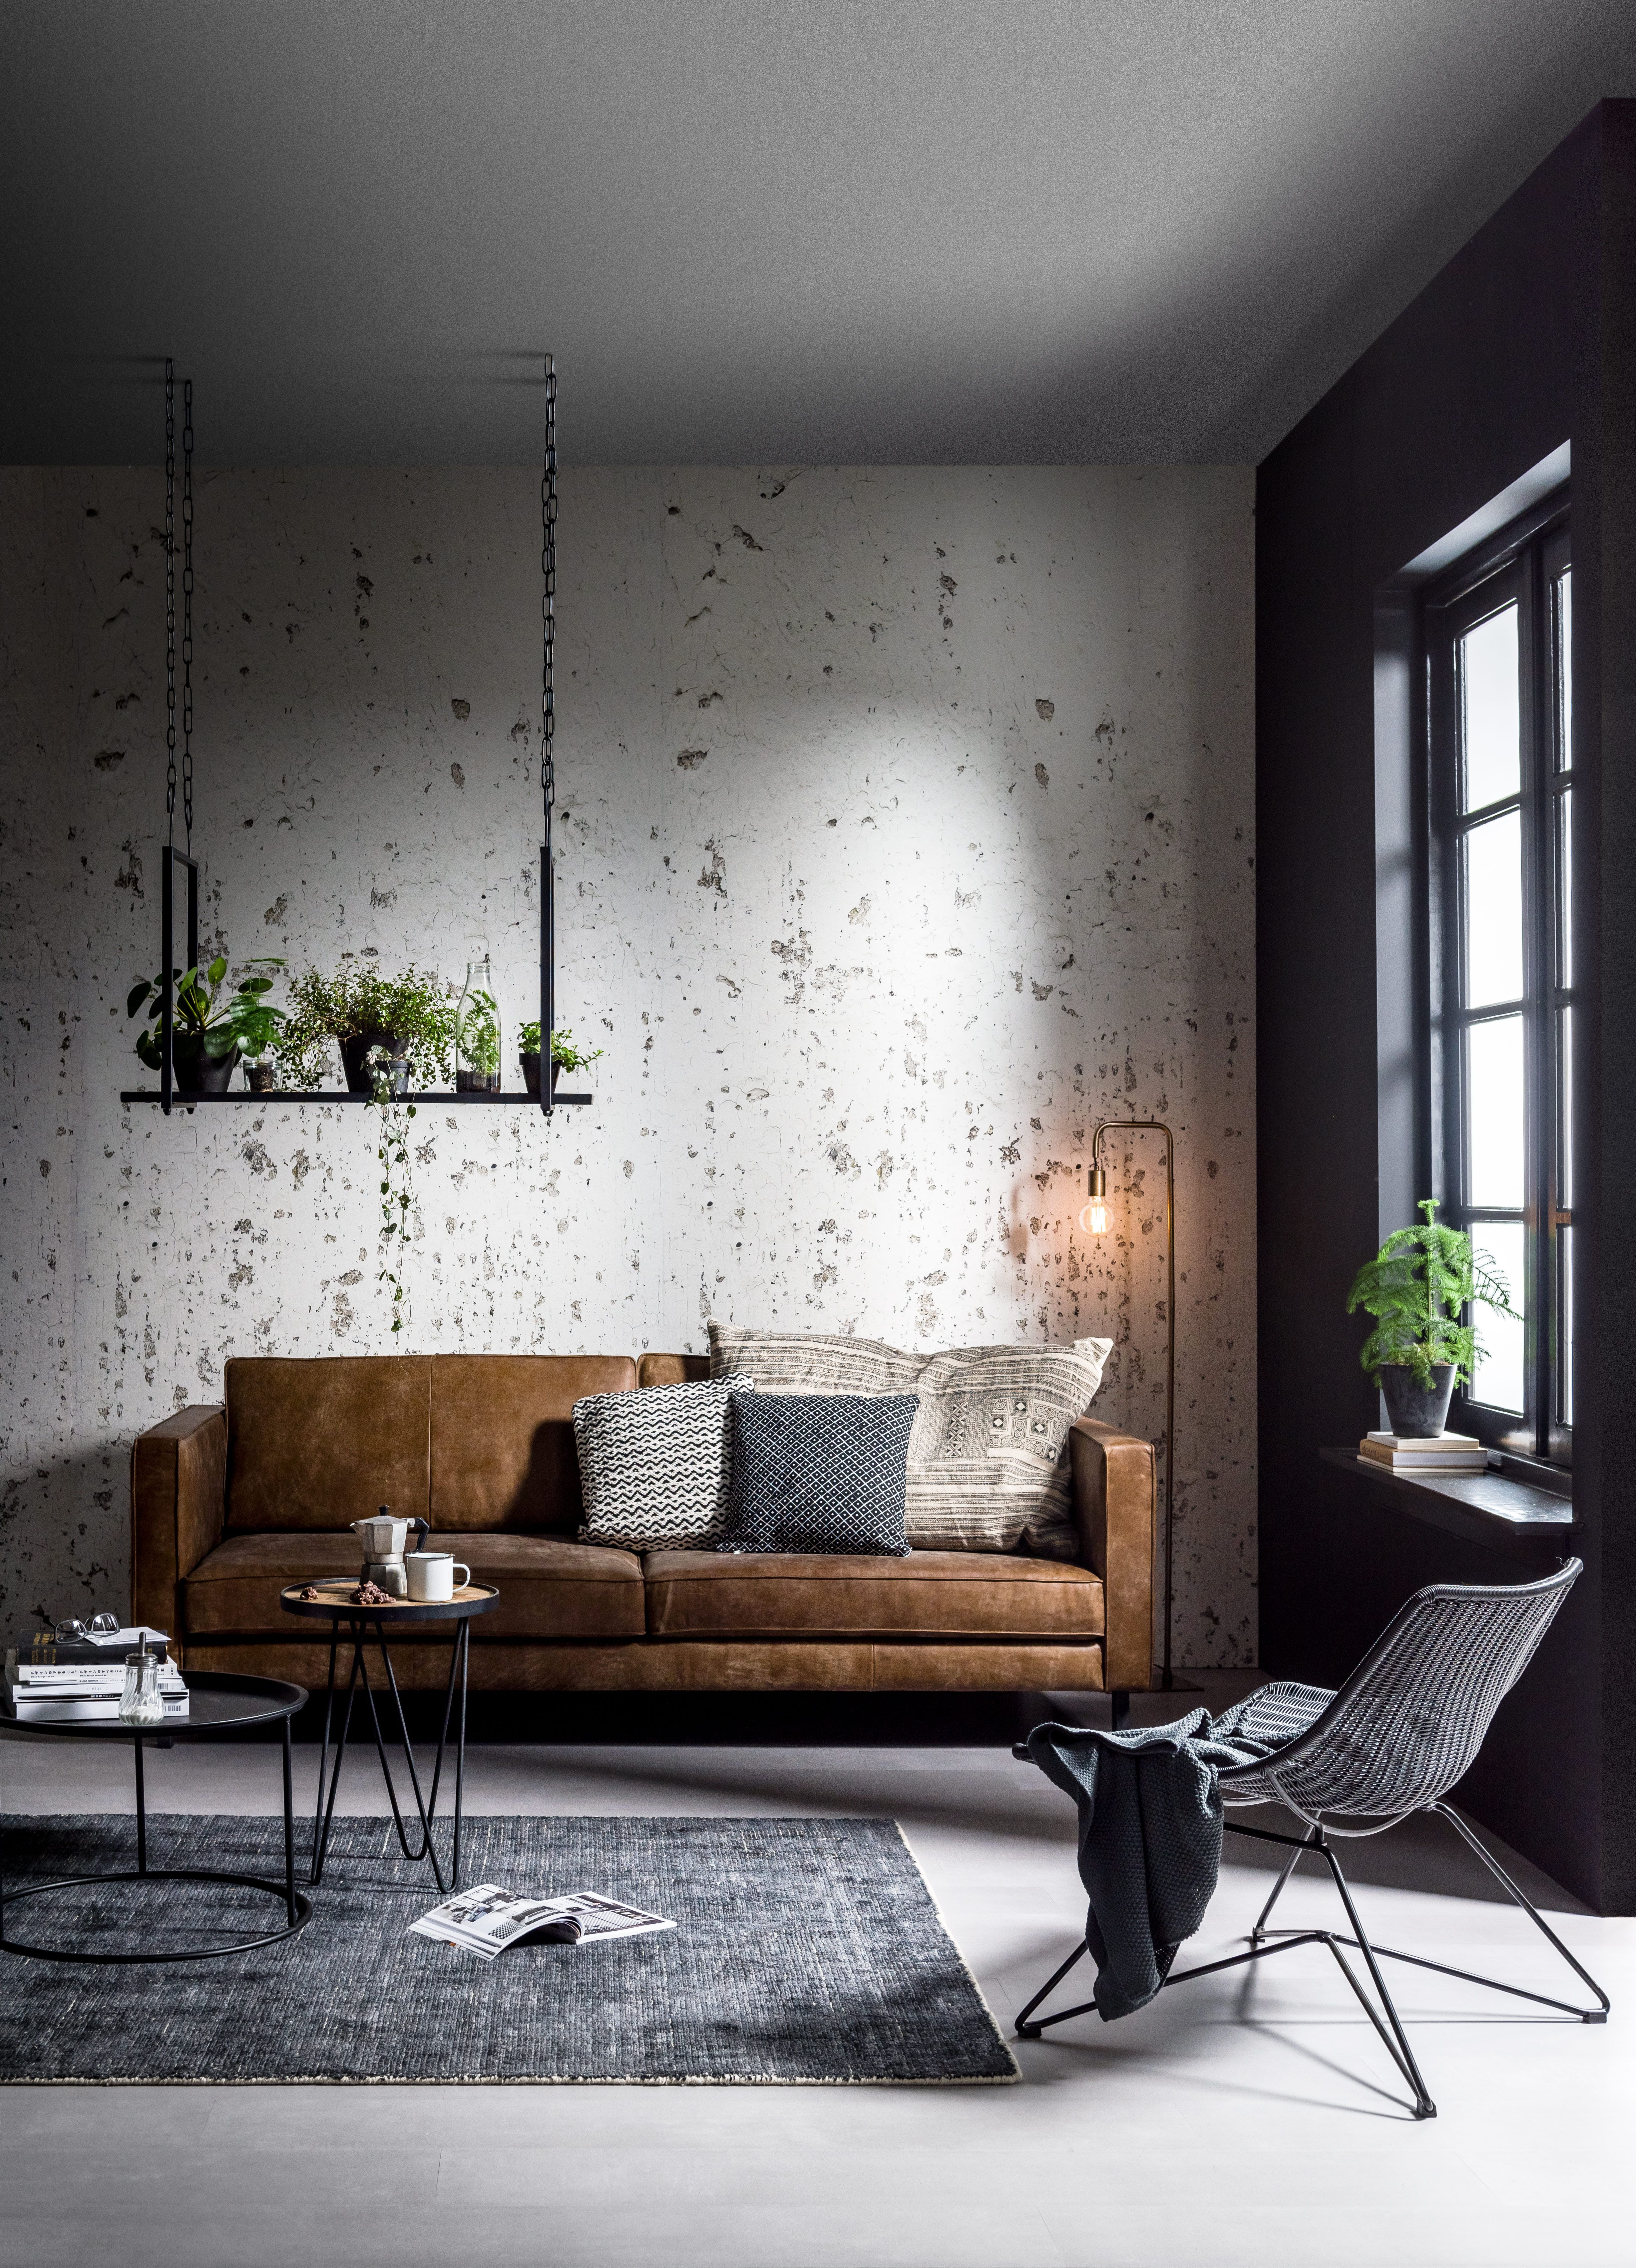 Modern Wallpaper Designs For Living Room: Creëer Je Eigen Basic Industrial Interieur Met Ons Nieuwe